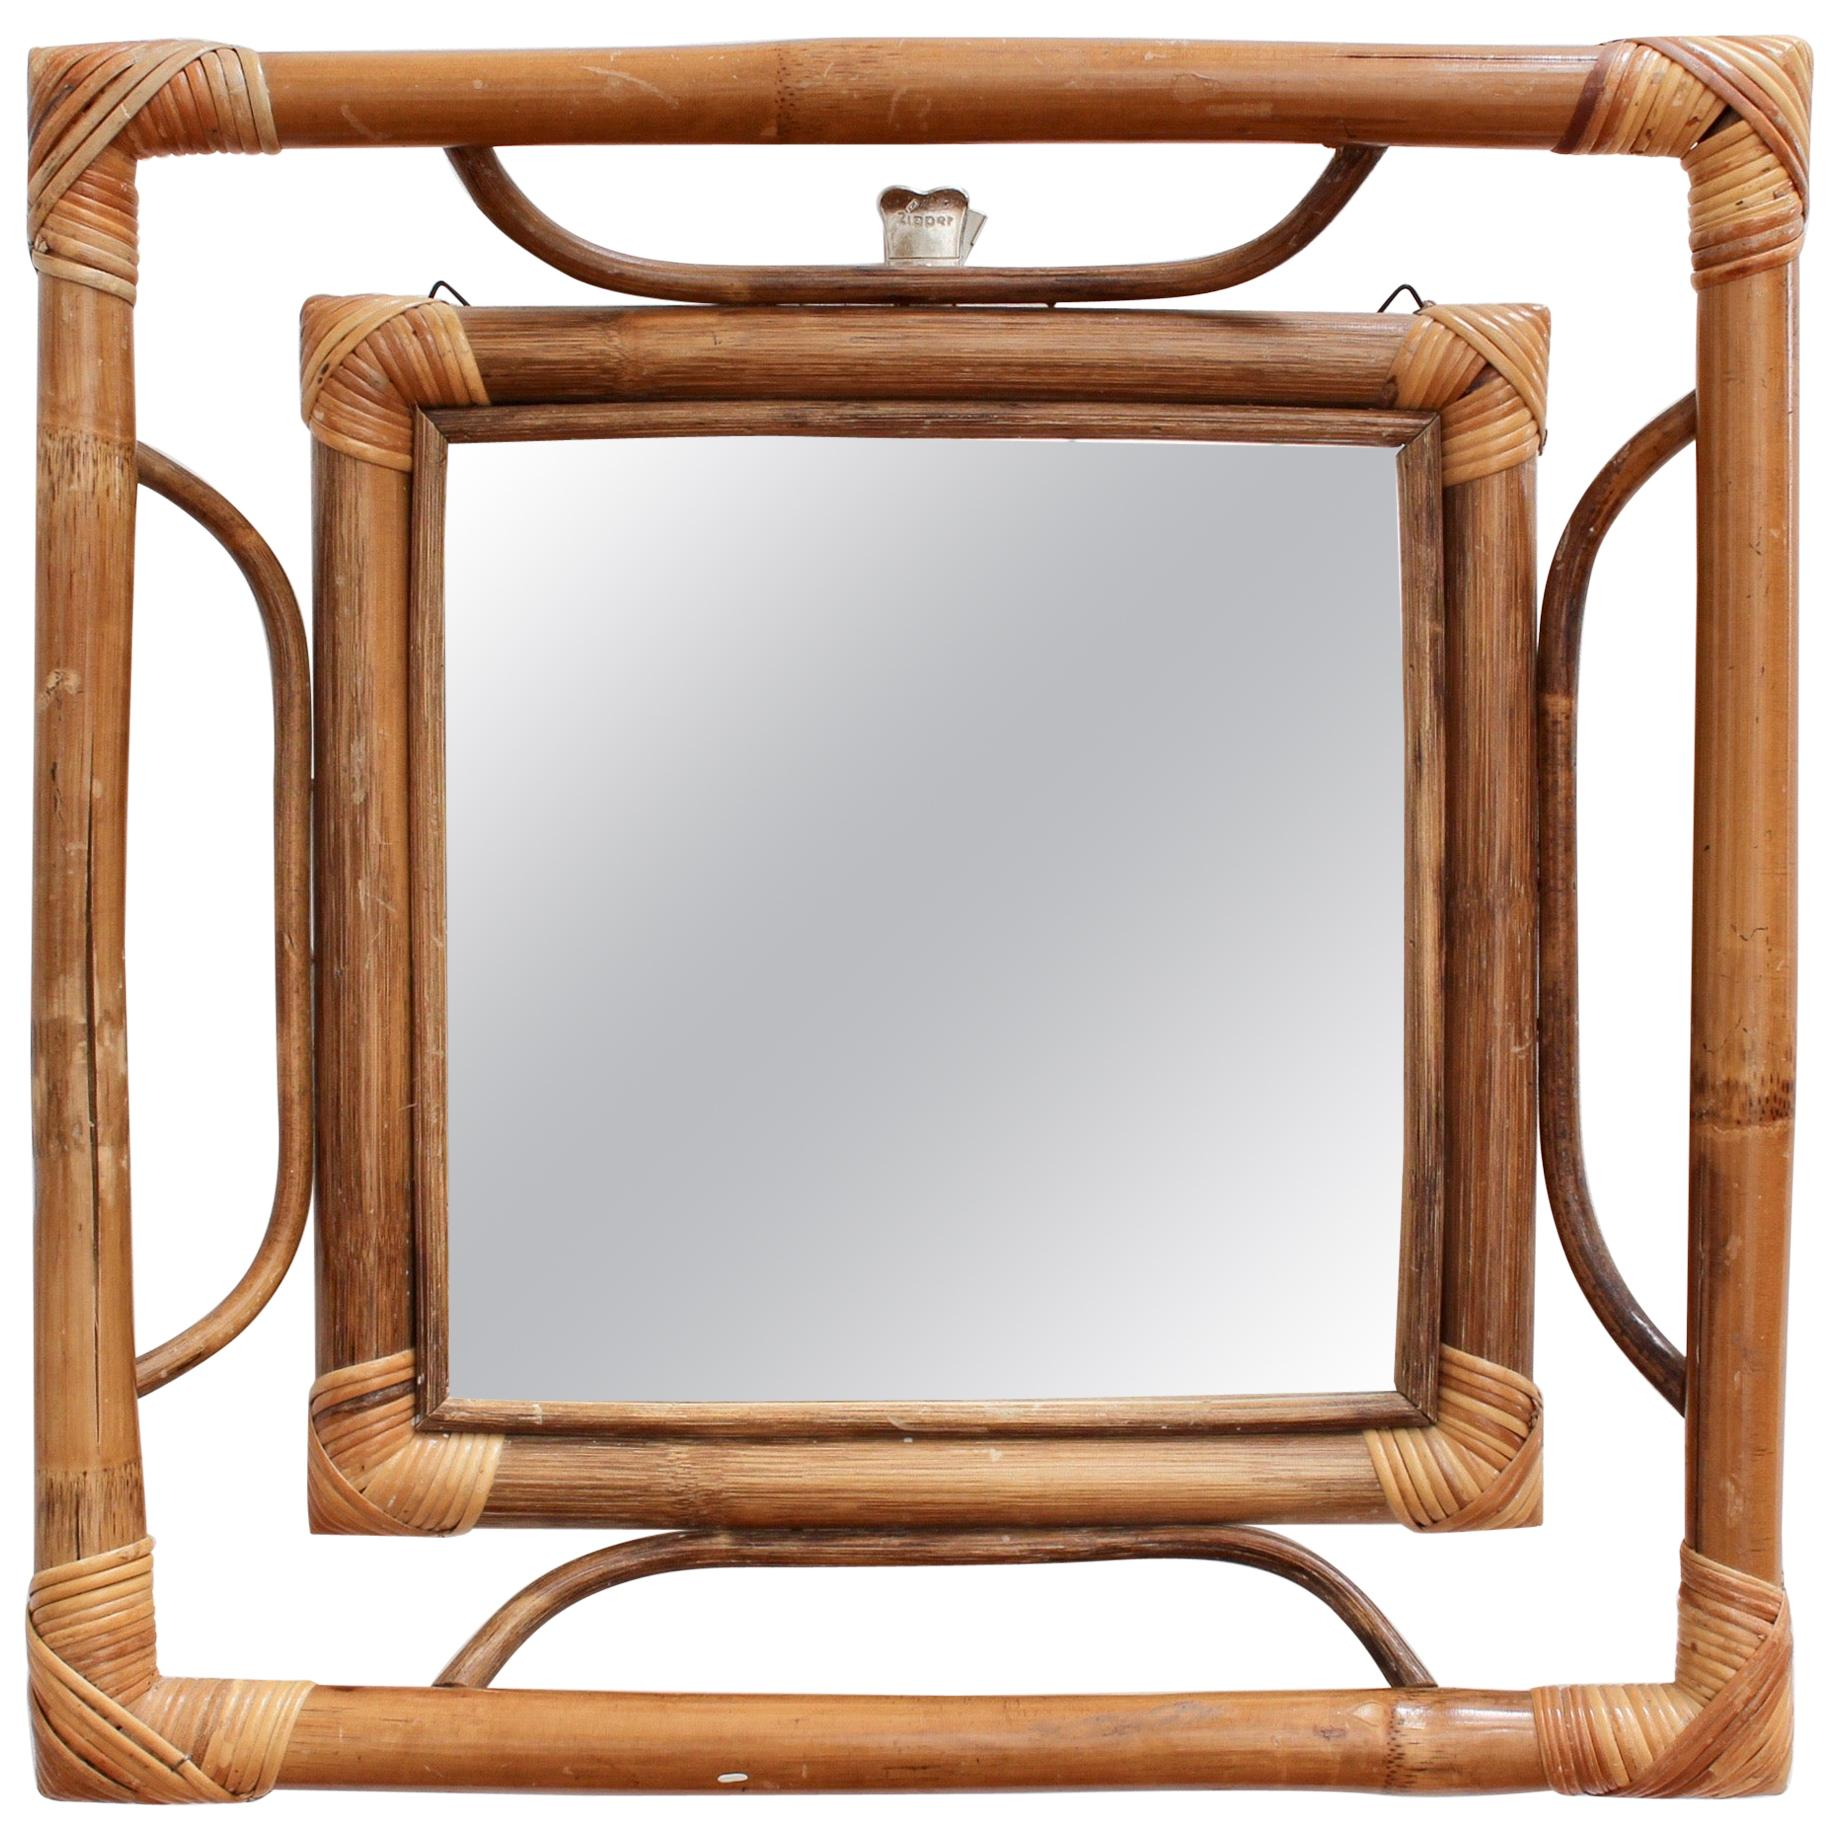 Midcentury French Indochine-Style Bamboo and Rattan Wall Mirror, circa 1960s